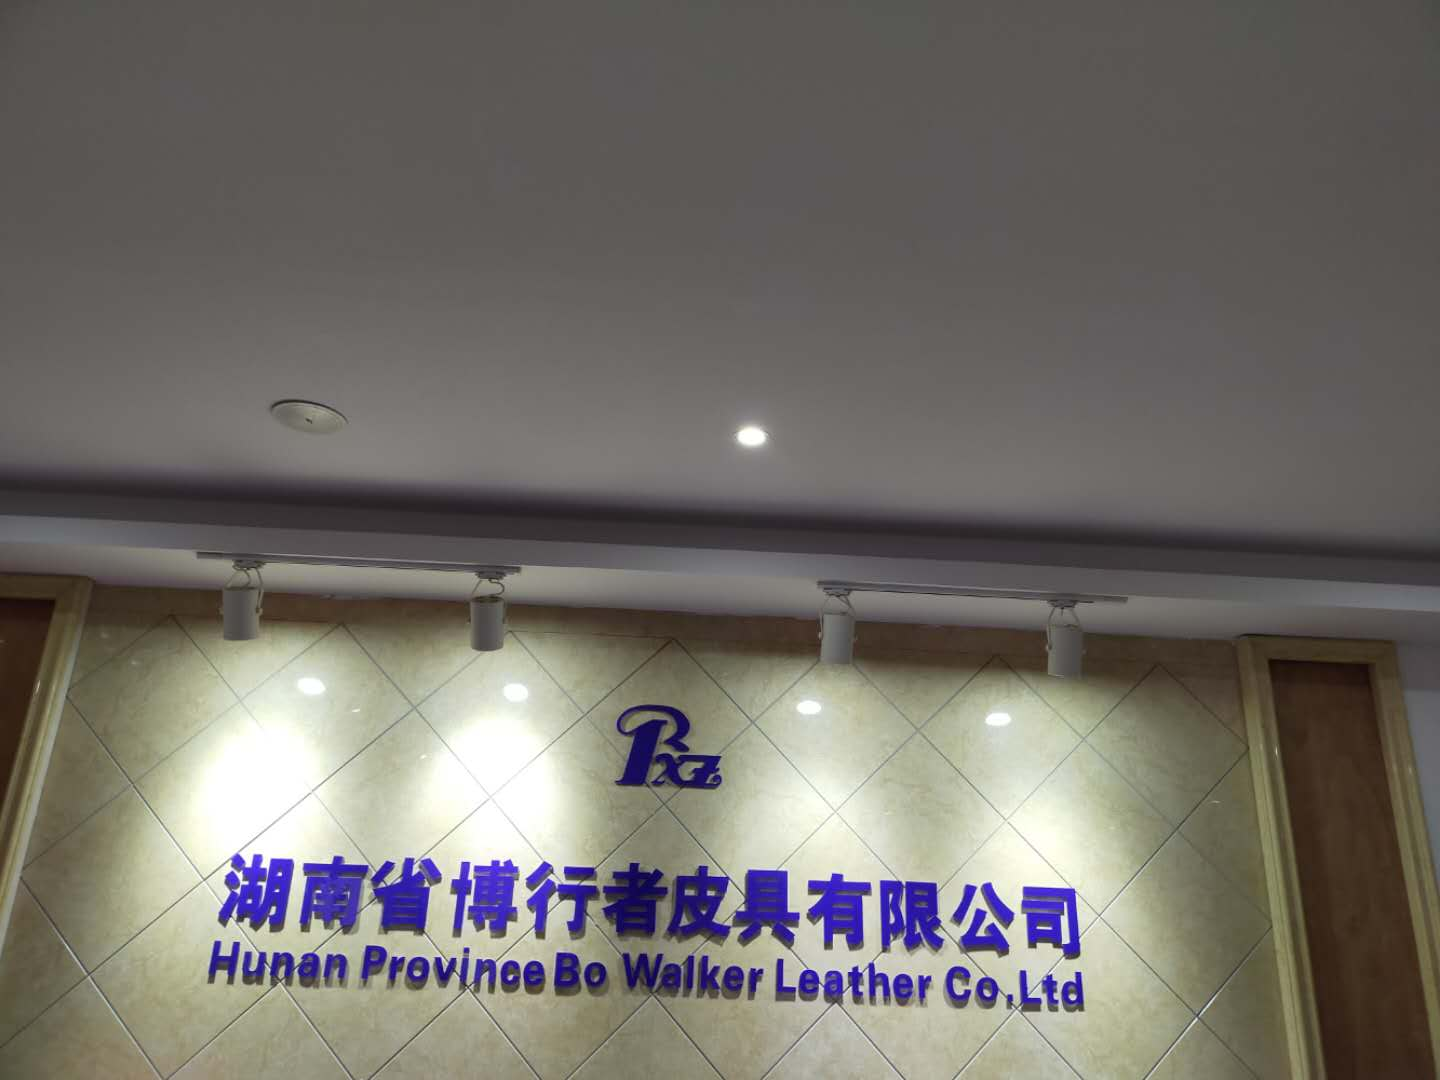 Hunan Province Bo Walker Leather Co.,Ltd